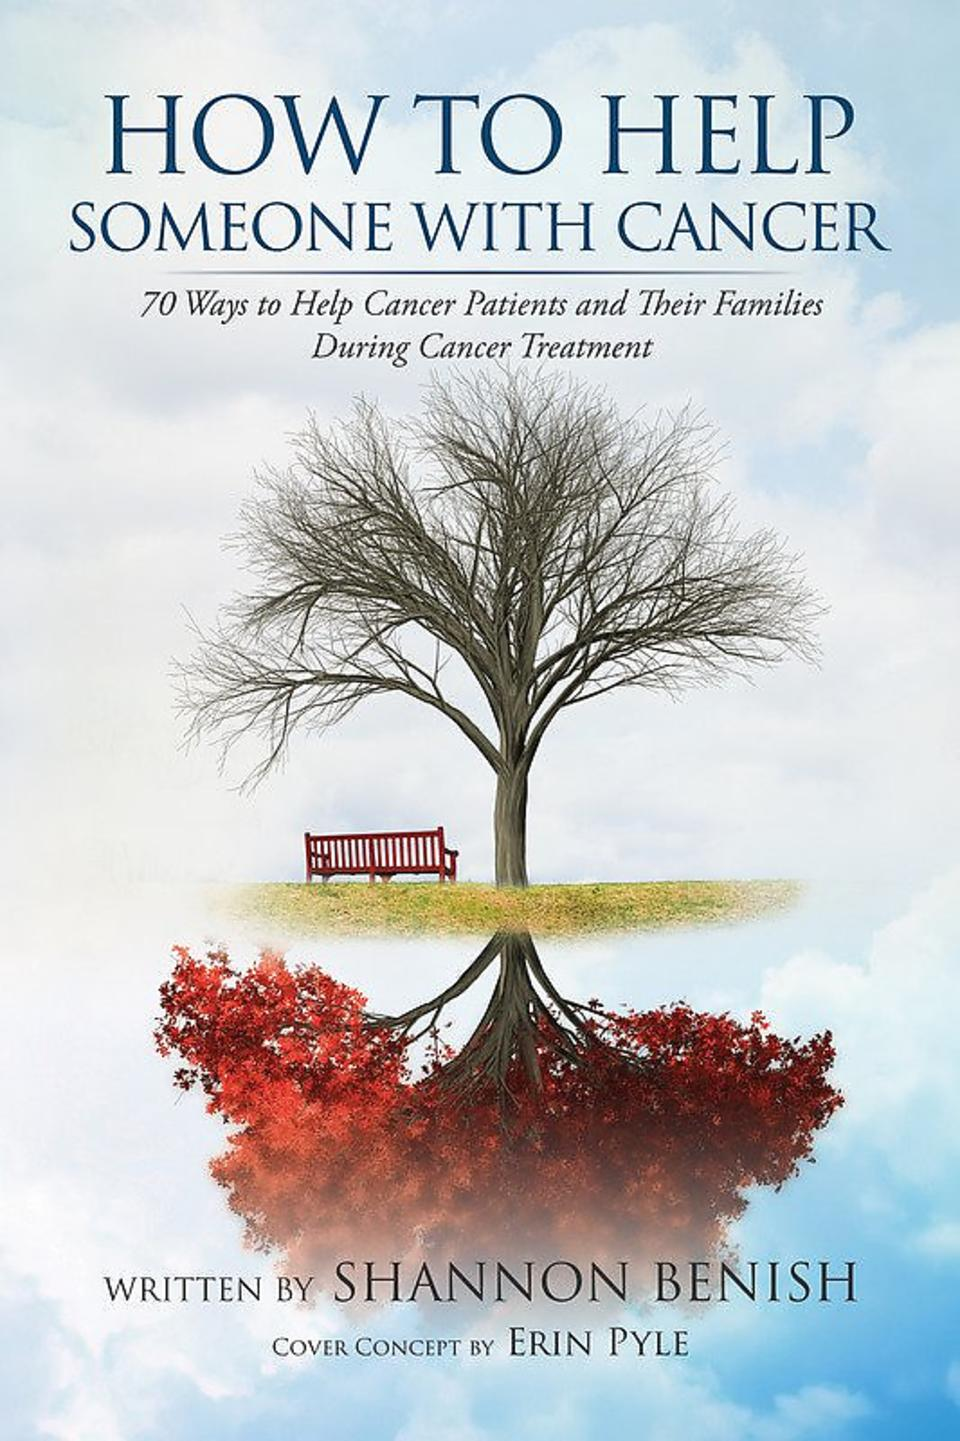 How To Help Someone With Cancer: 70 Ways to Help Cancer Patients and Their Families